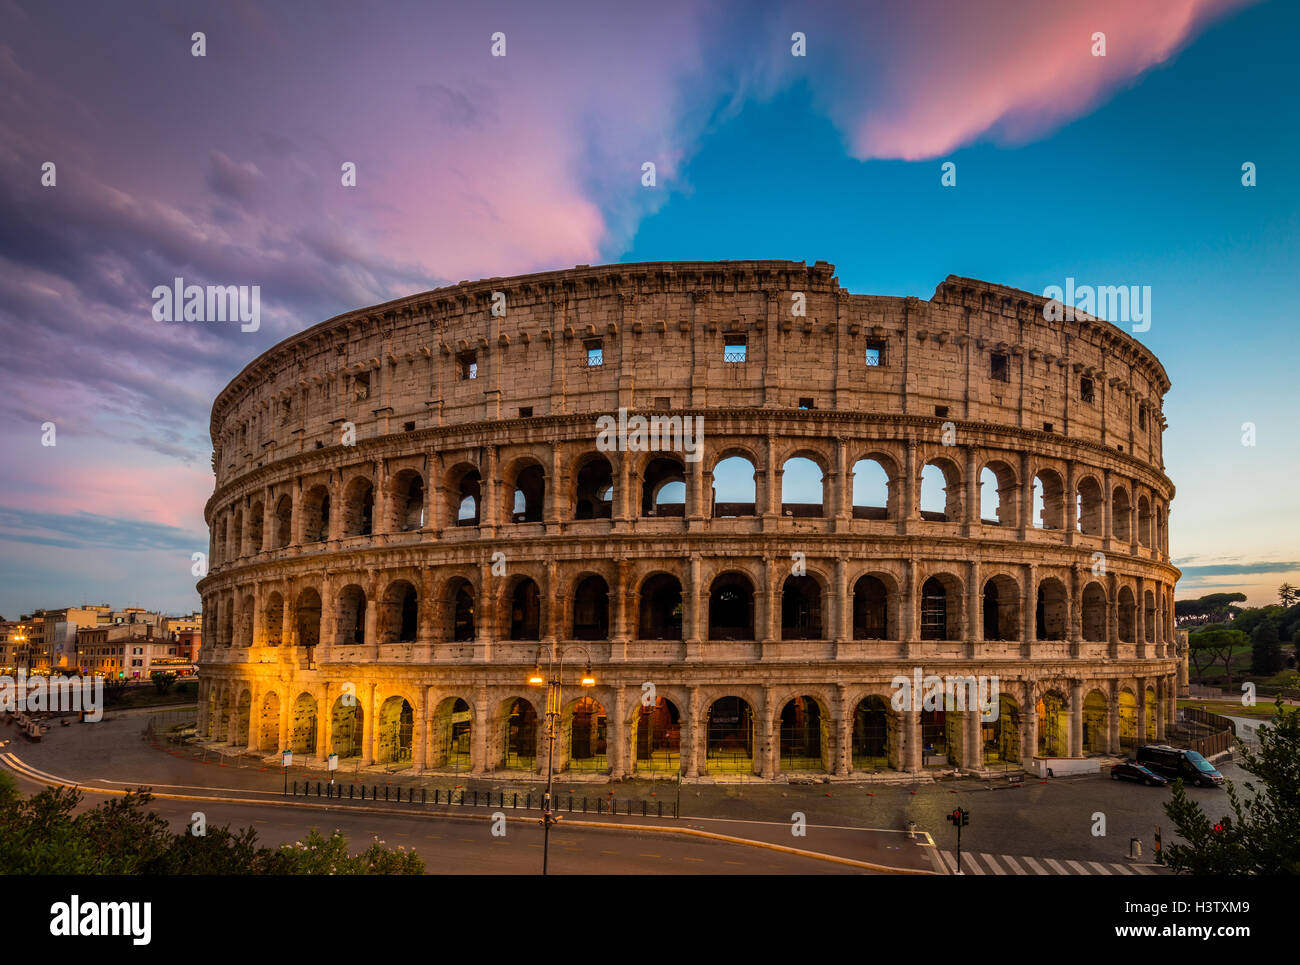 The Colosseum, the largest amphitheatre in the world, is an elliptical amphitheatre in the centre of the city of Stock Photo